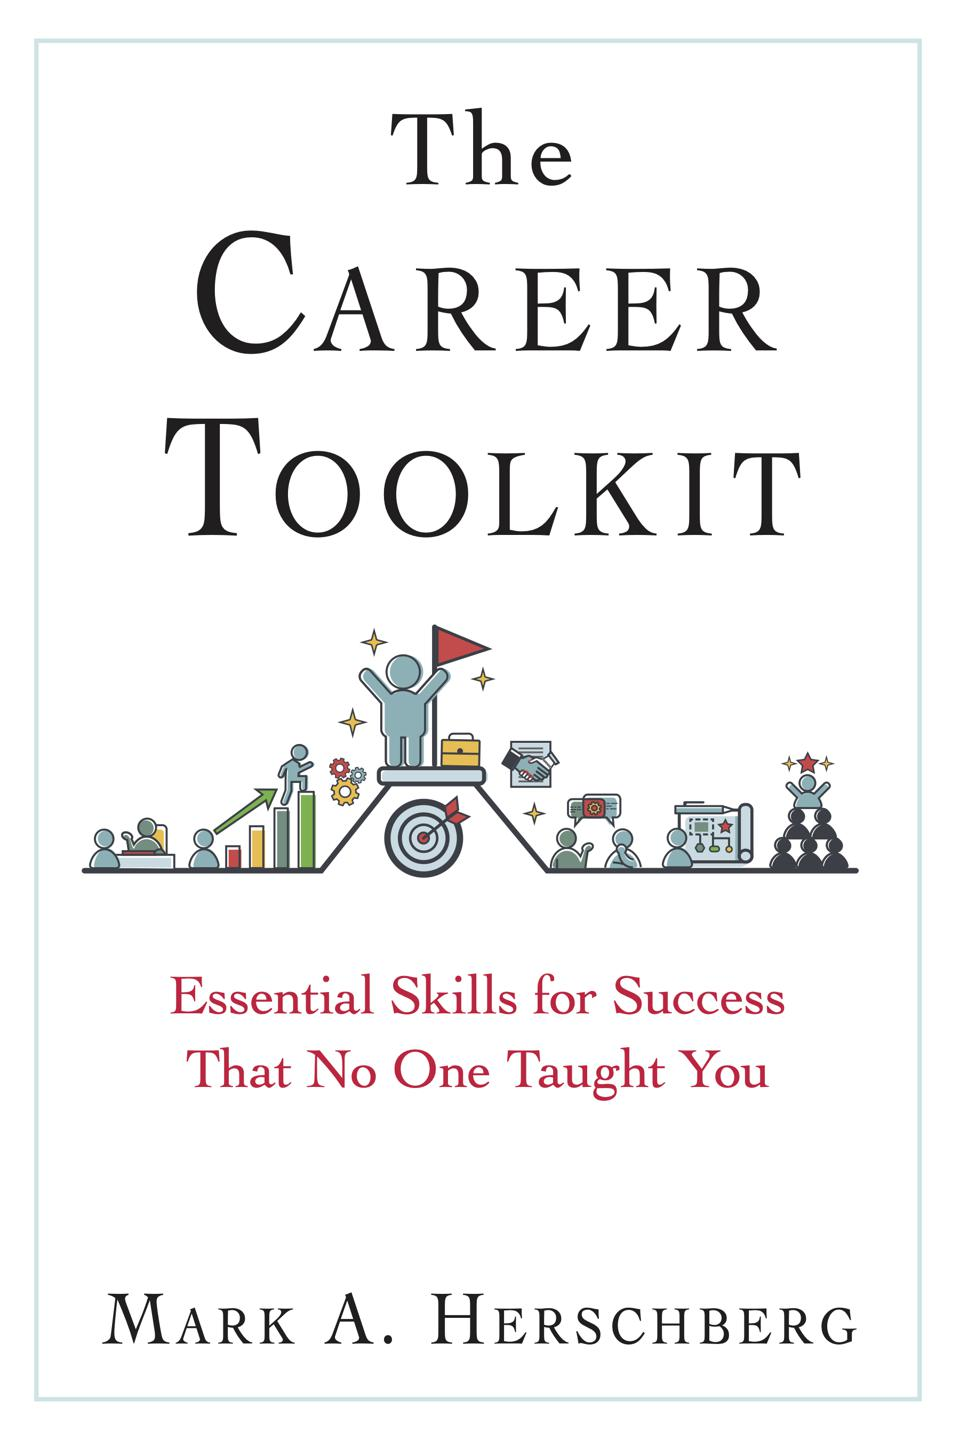 The Career Toolkit is a how-to book to move your career forward.